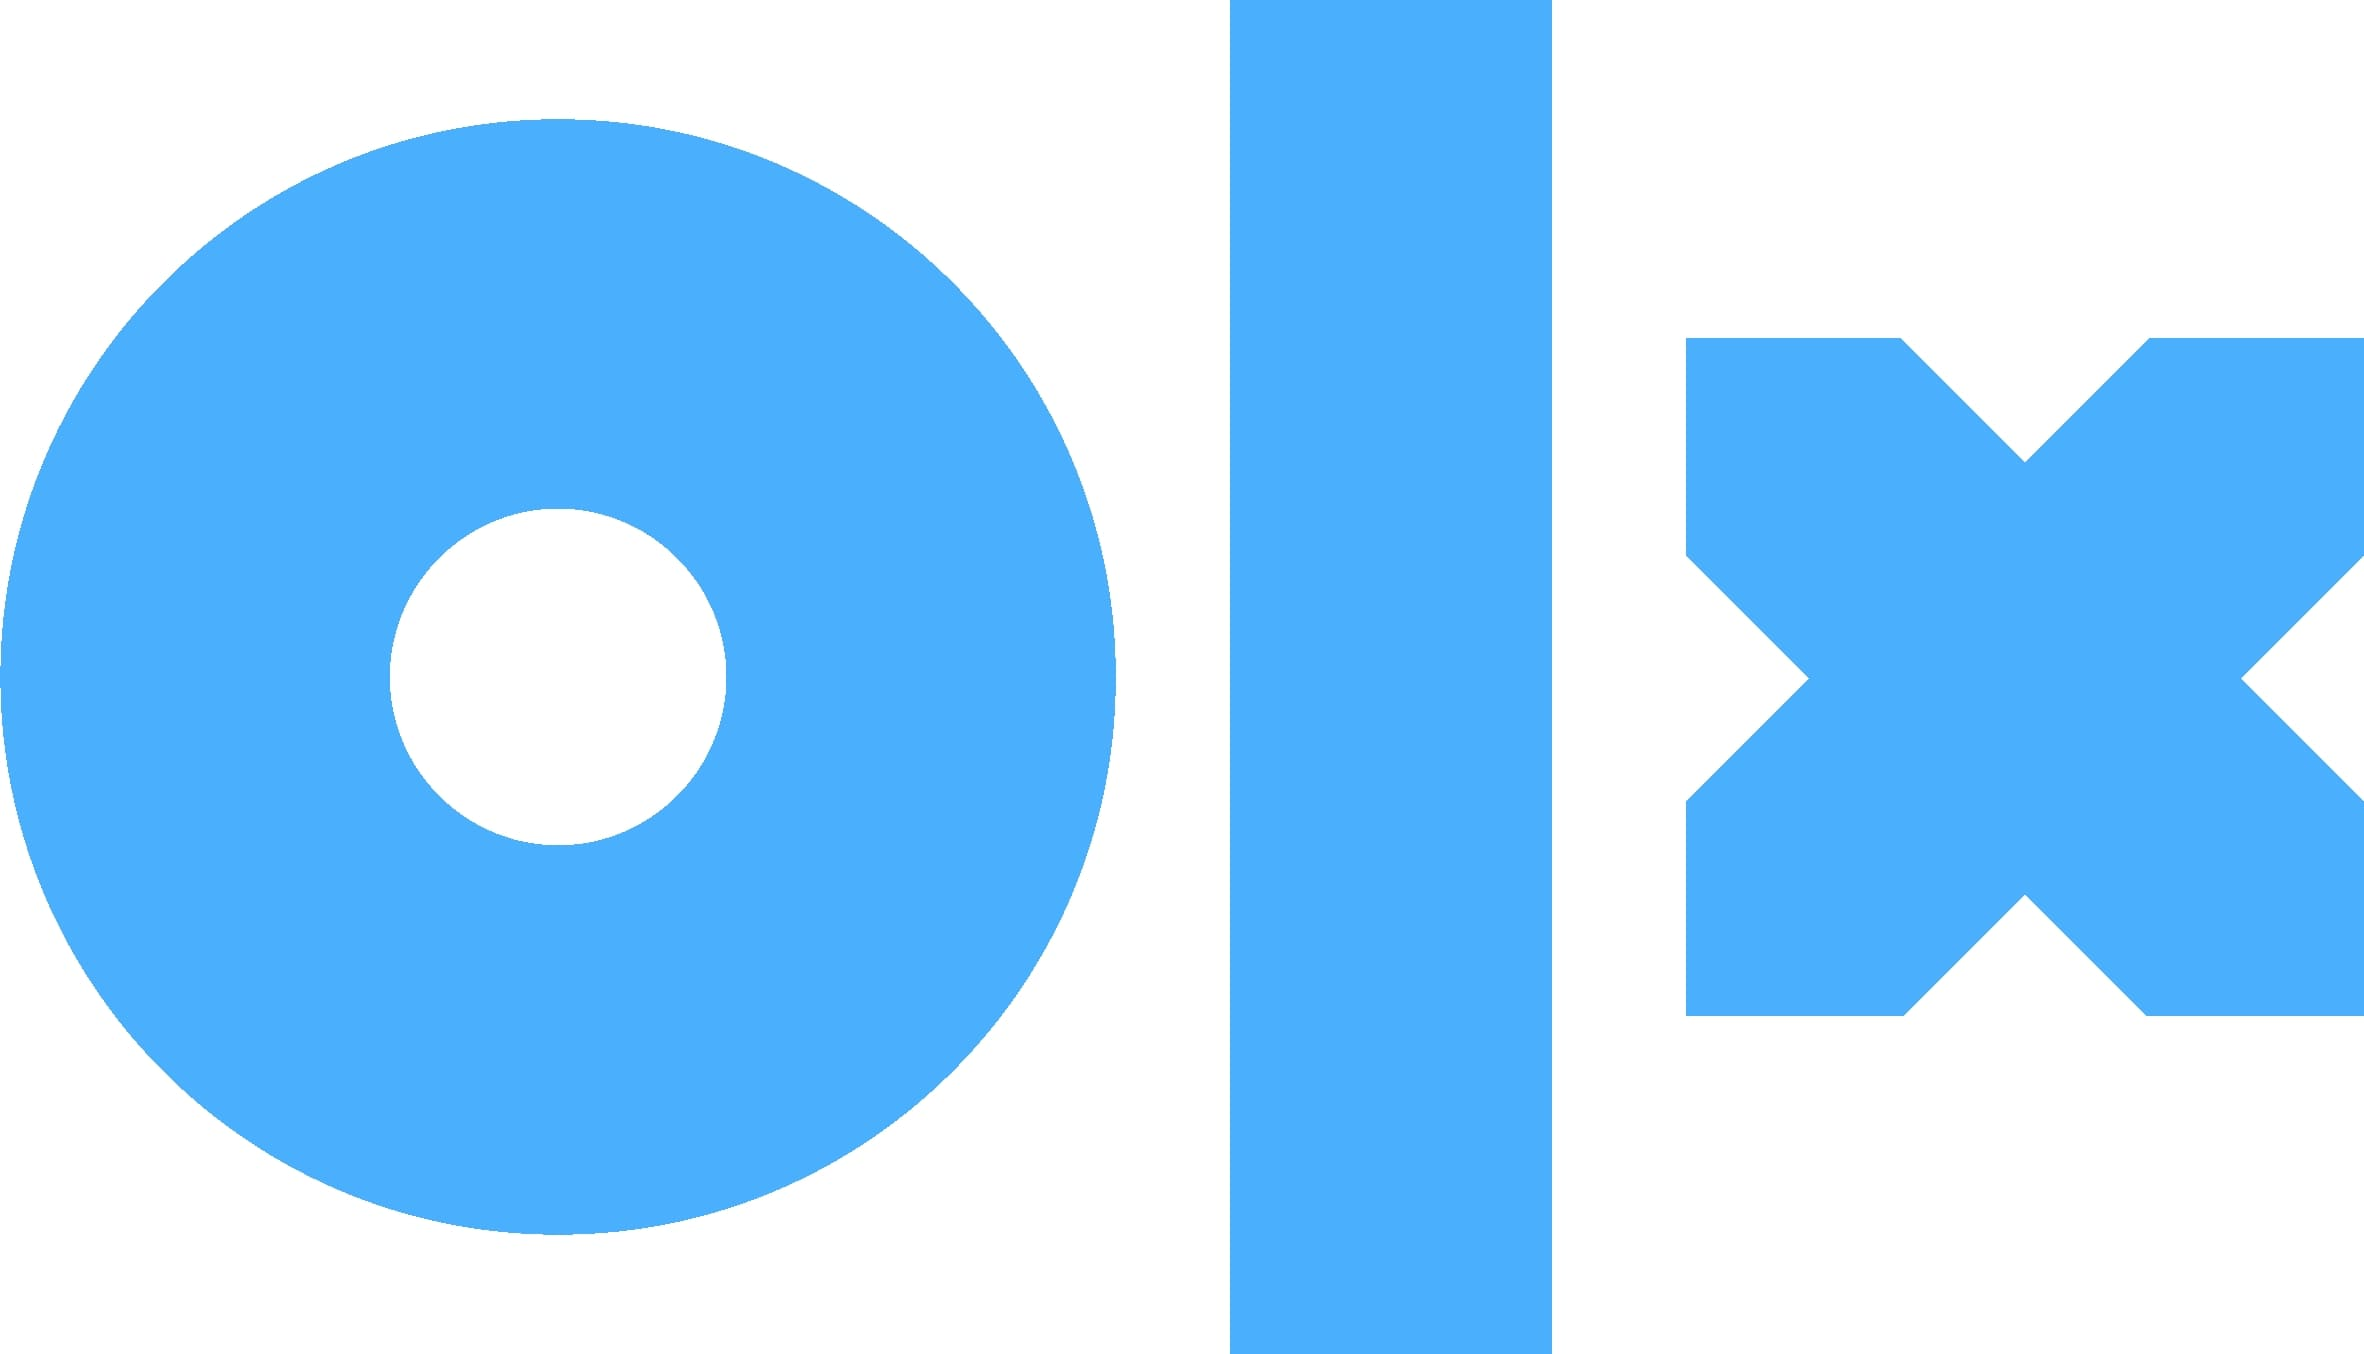 OLX logo and symbol, meaning, history, PNG